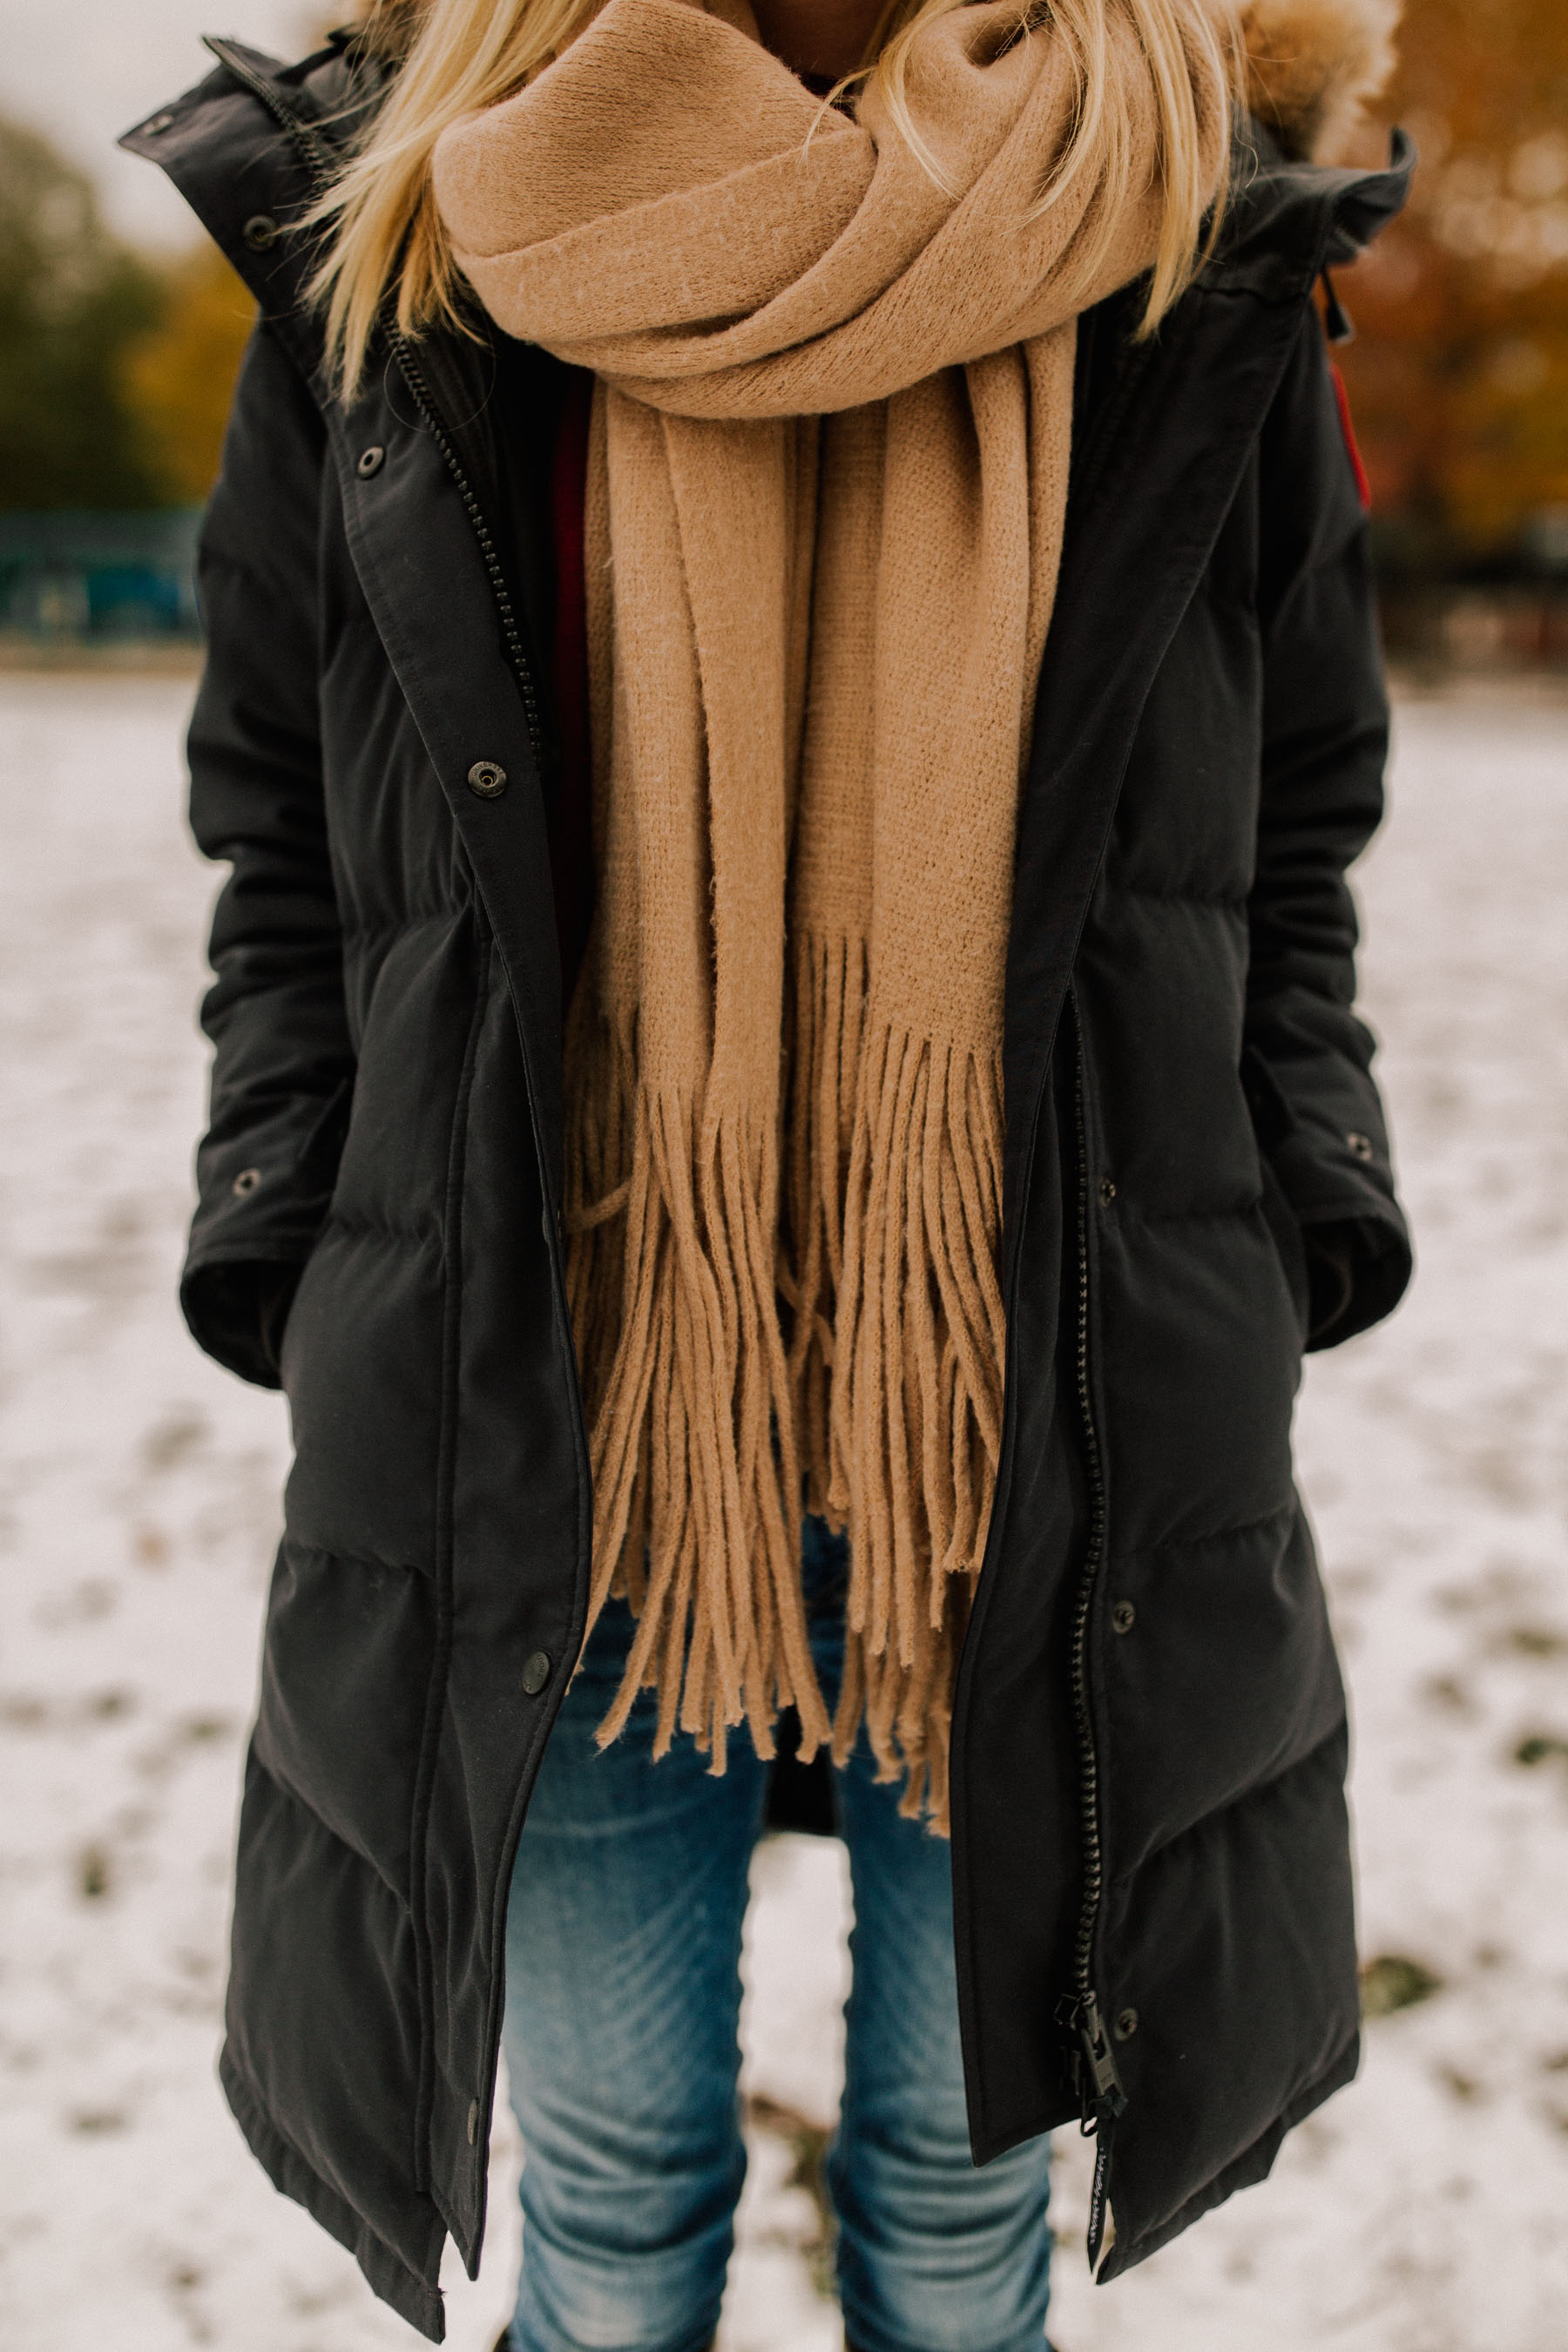 Do you have a Canada Goose jacket? What's your experience been like? Do you have any other tips for staying warm in the freezing cold?